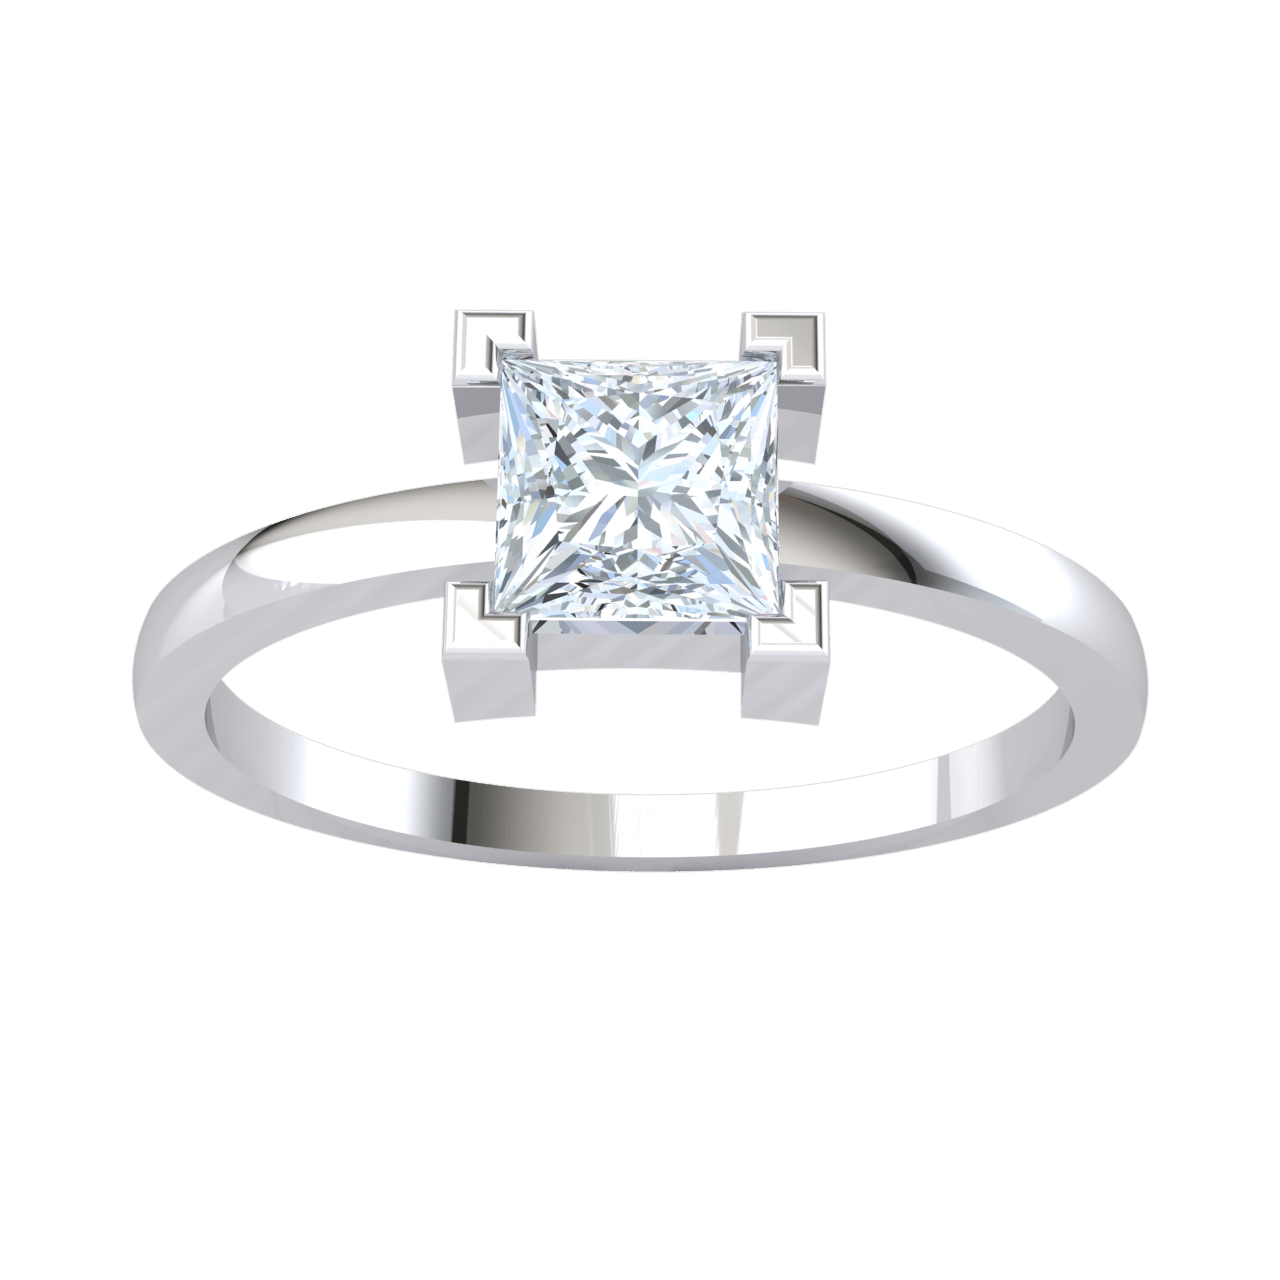 0.57 Ct GH SI2 Radiant Square Shaped White Diamond Inlaid In A Real Engagement Ring in 14 kt Gold